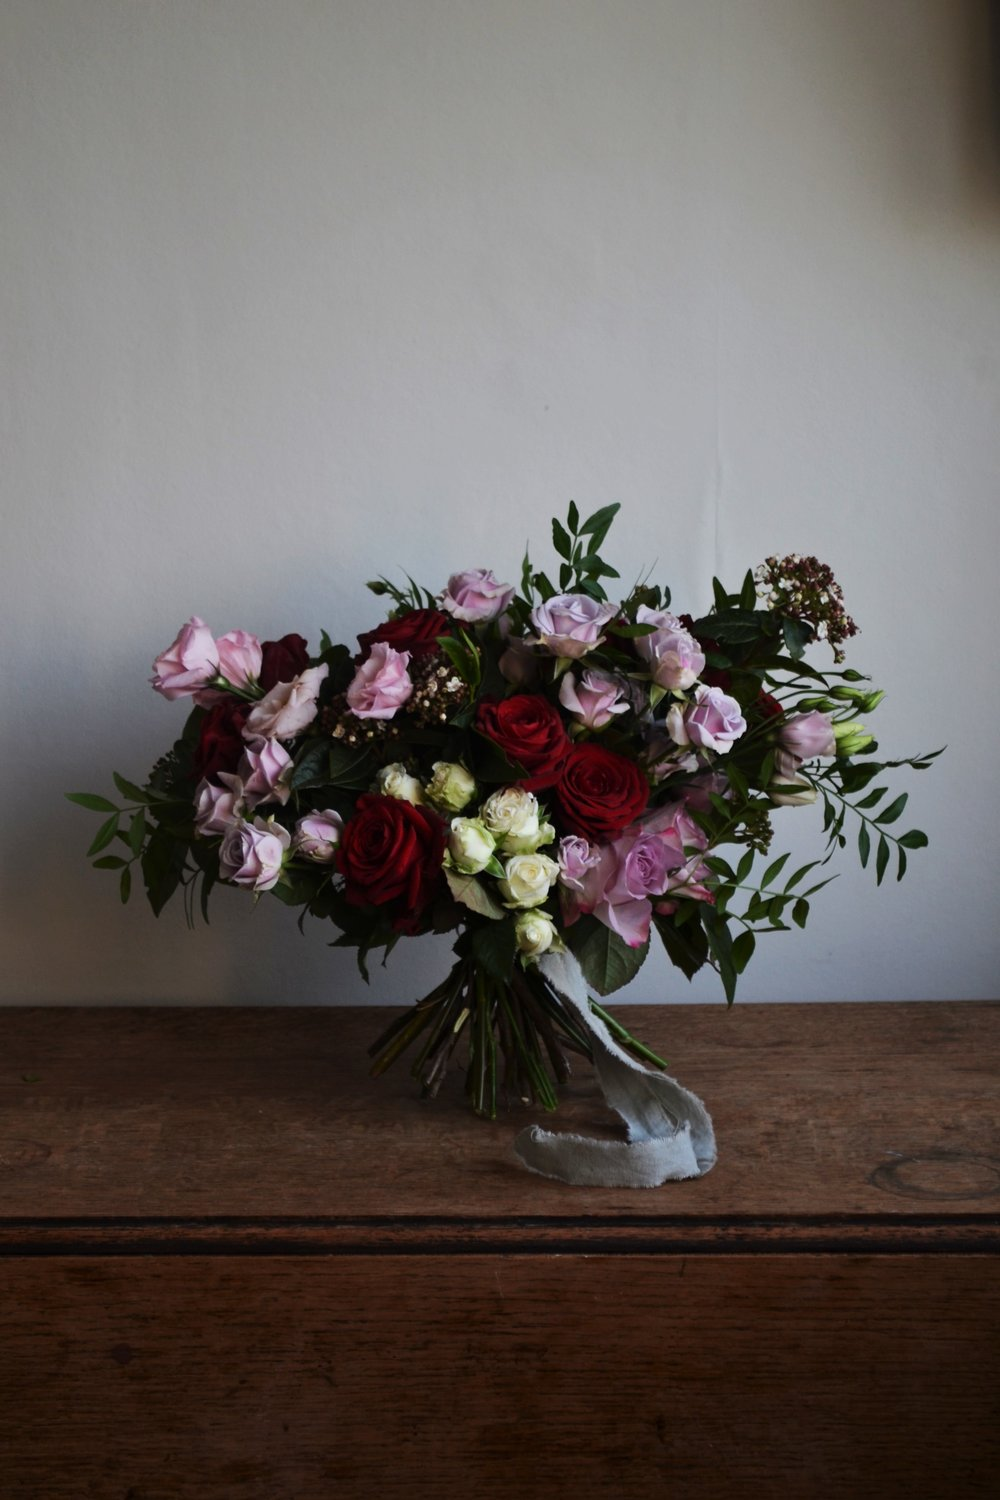 Webb-and-Farrer-Brighton-Florist-Sussex-Wedding-Flowers-Blush-Pink-Burgundy-Bridal-Bouquet (6).JPG